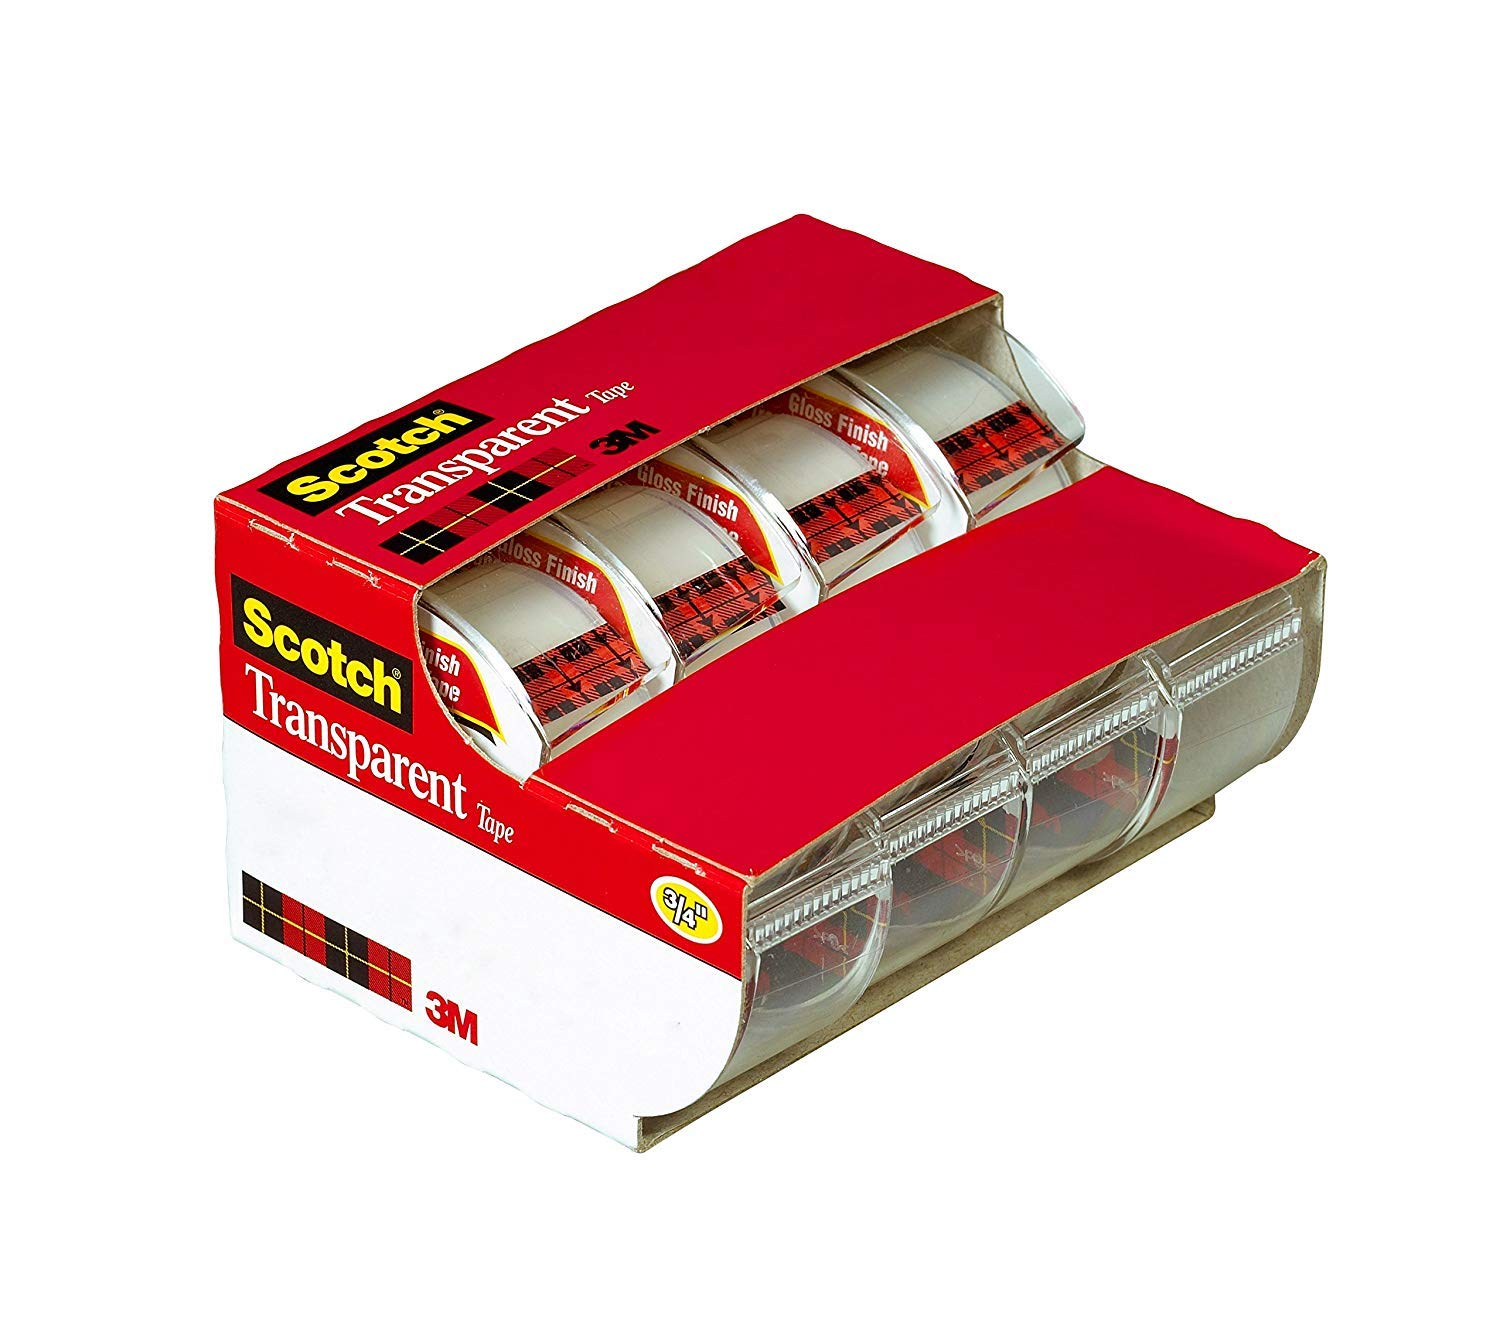 Scotch Transparent Tape, Versatile, Photo-Safe, Great for Gift Wrapping, 3/4 x 850 Inches, 4 Dispensered Rolls (4814)